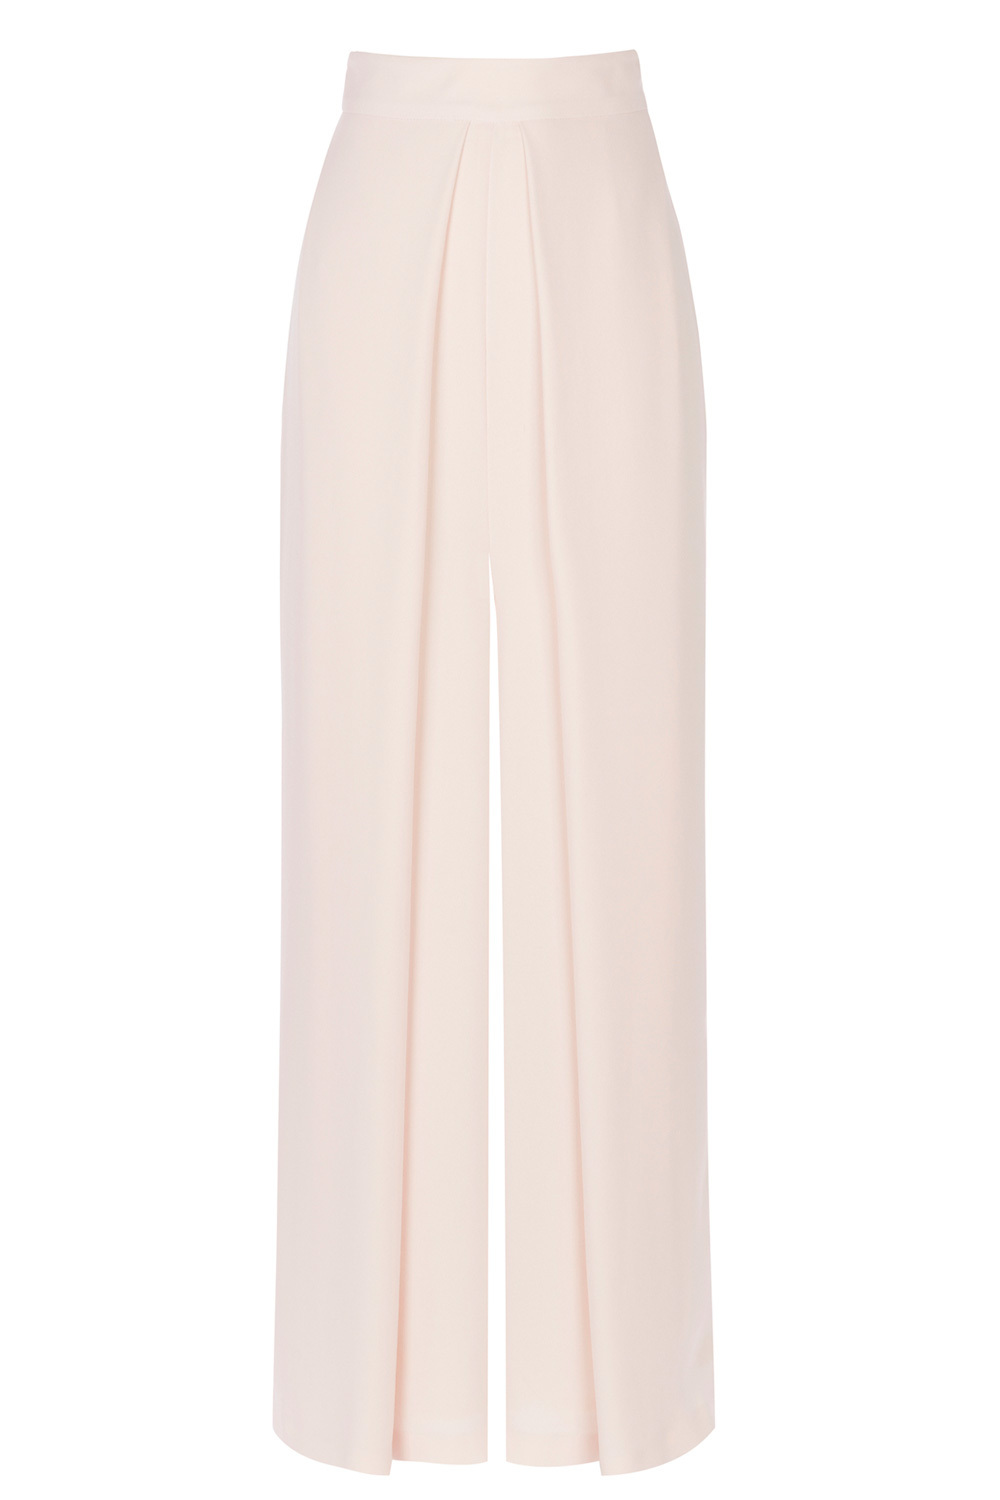 Acra Wide Leg Trousers - length: standard; pattern: plain; waist: high rise; predominant colour: ivory/cream; occasions: evening, occasion; fibres: polyester/polyamide - 100%; texture group: crepes; fit: wide leg; pattern type: fabric; style: standard; pattern size: standard (bottom); season: a/w 2016; wardrobe: event